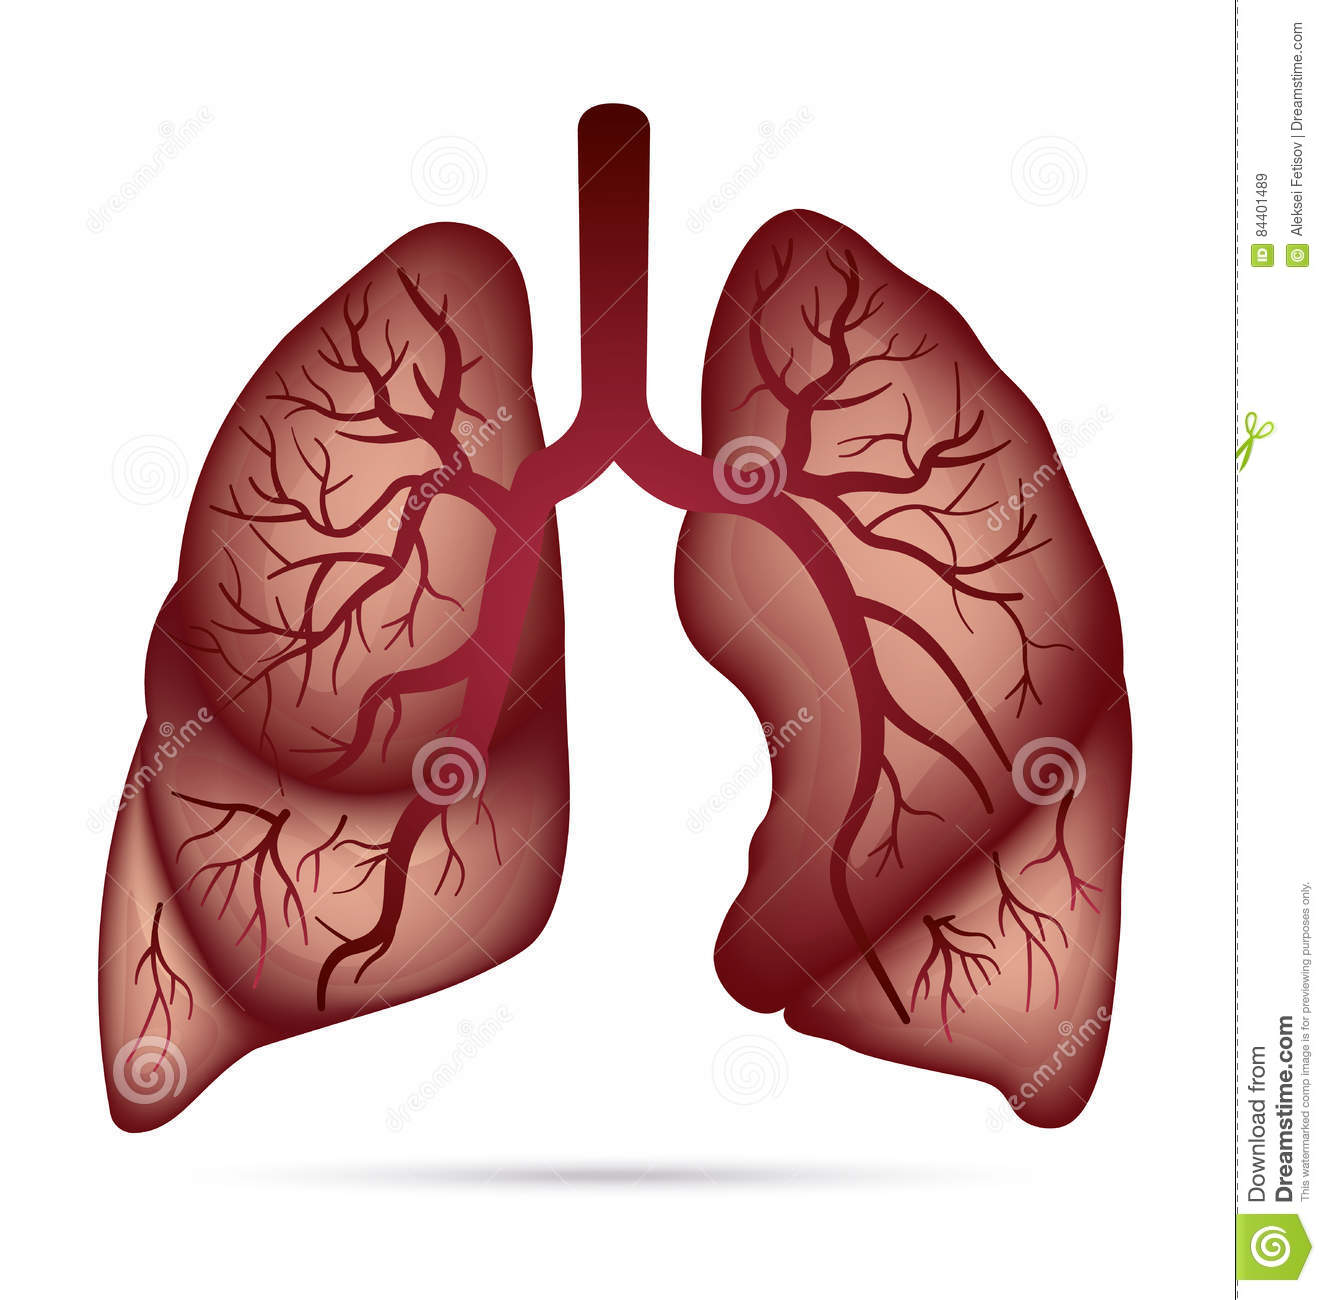 lung diagram drawing xfinity network tuberculosis in human lungs cartoon vector | cartoondealer.com #73719353